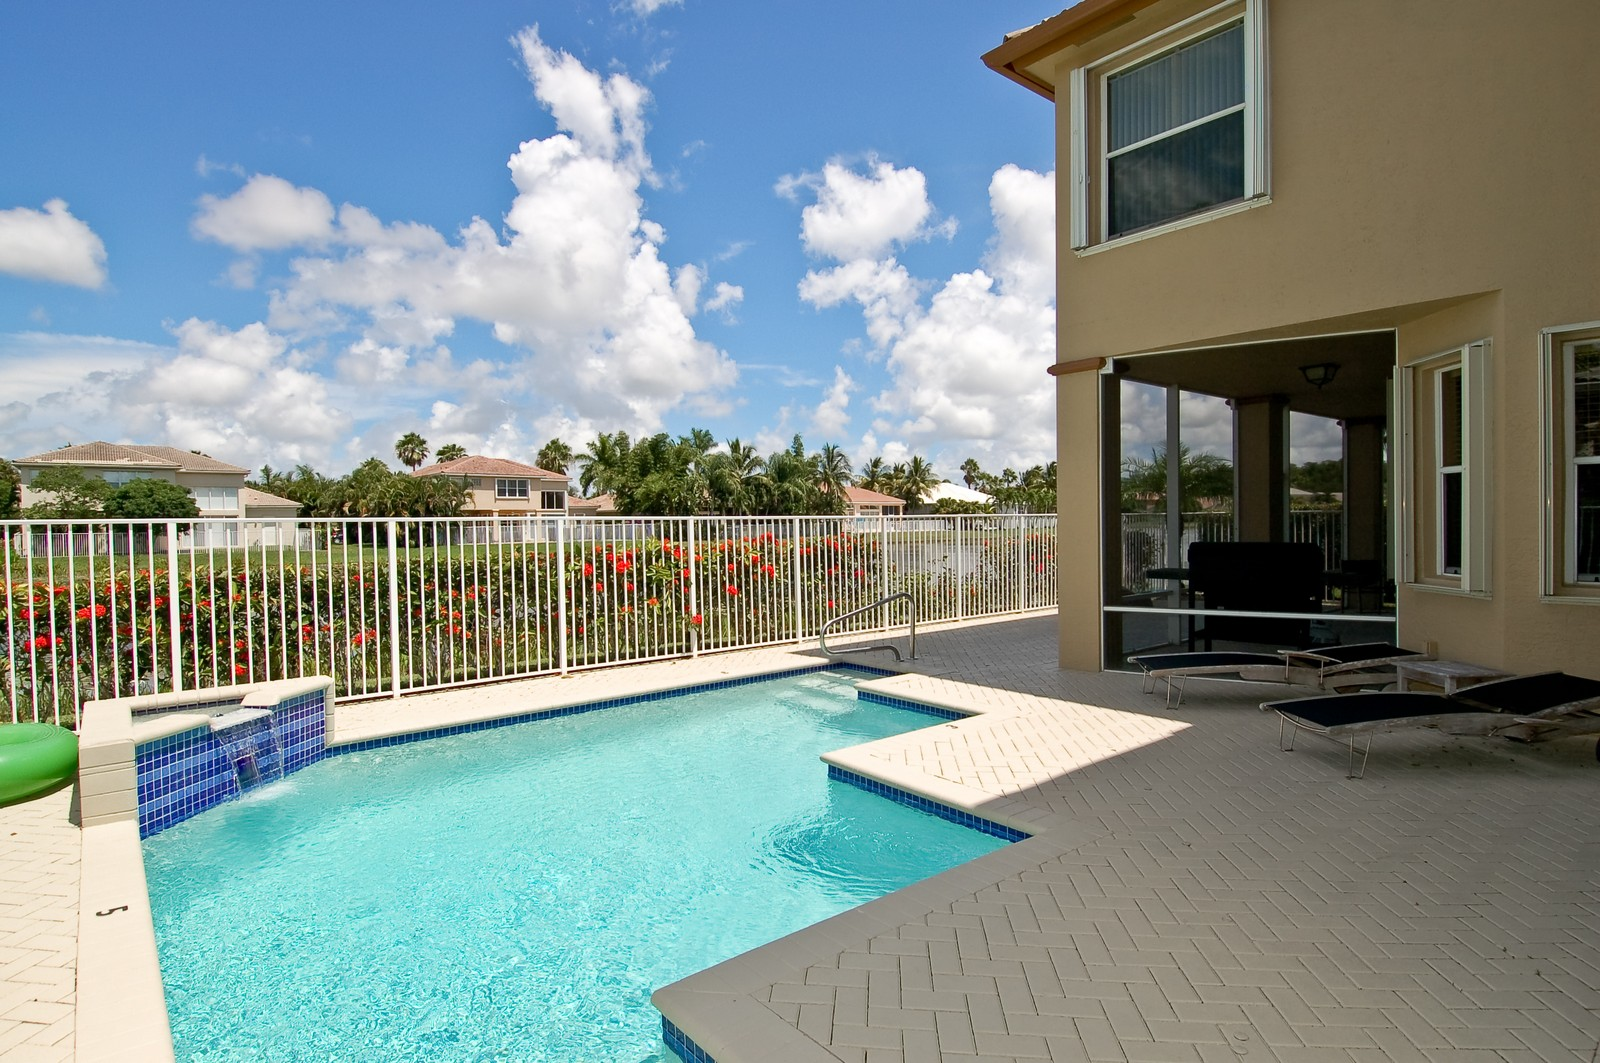 Real Estate Photography - 11308 Sea Grass Cir, Boca Raton, FL, 33498 - Pool